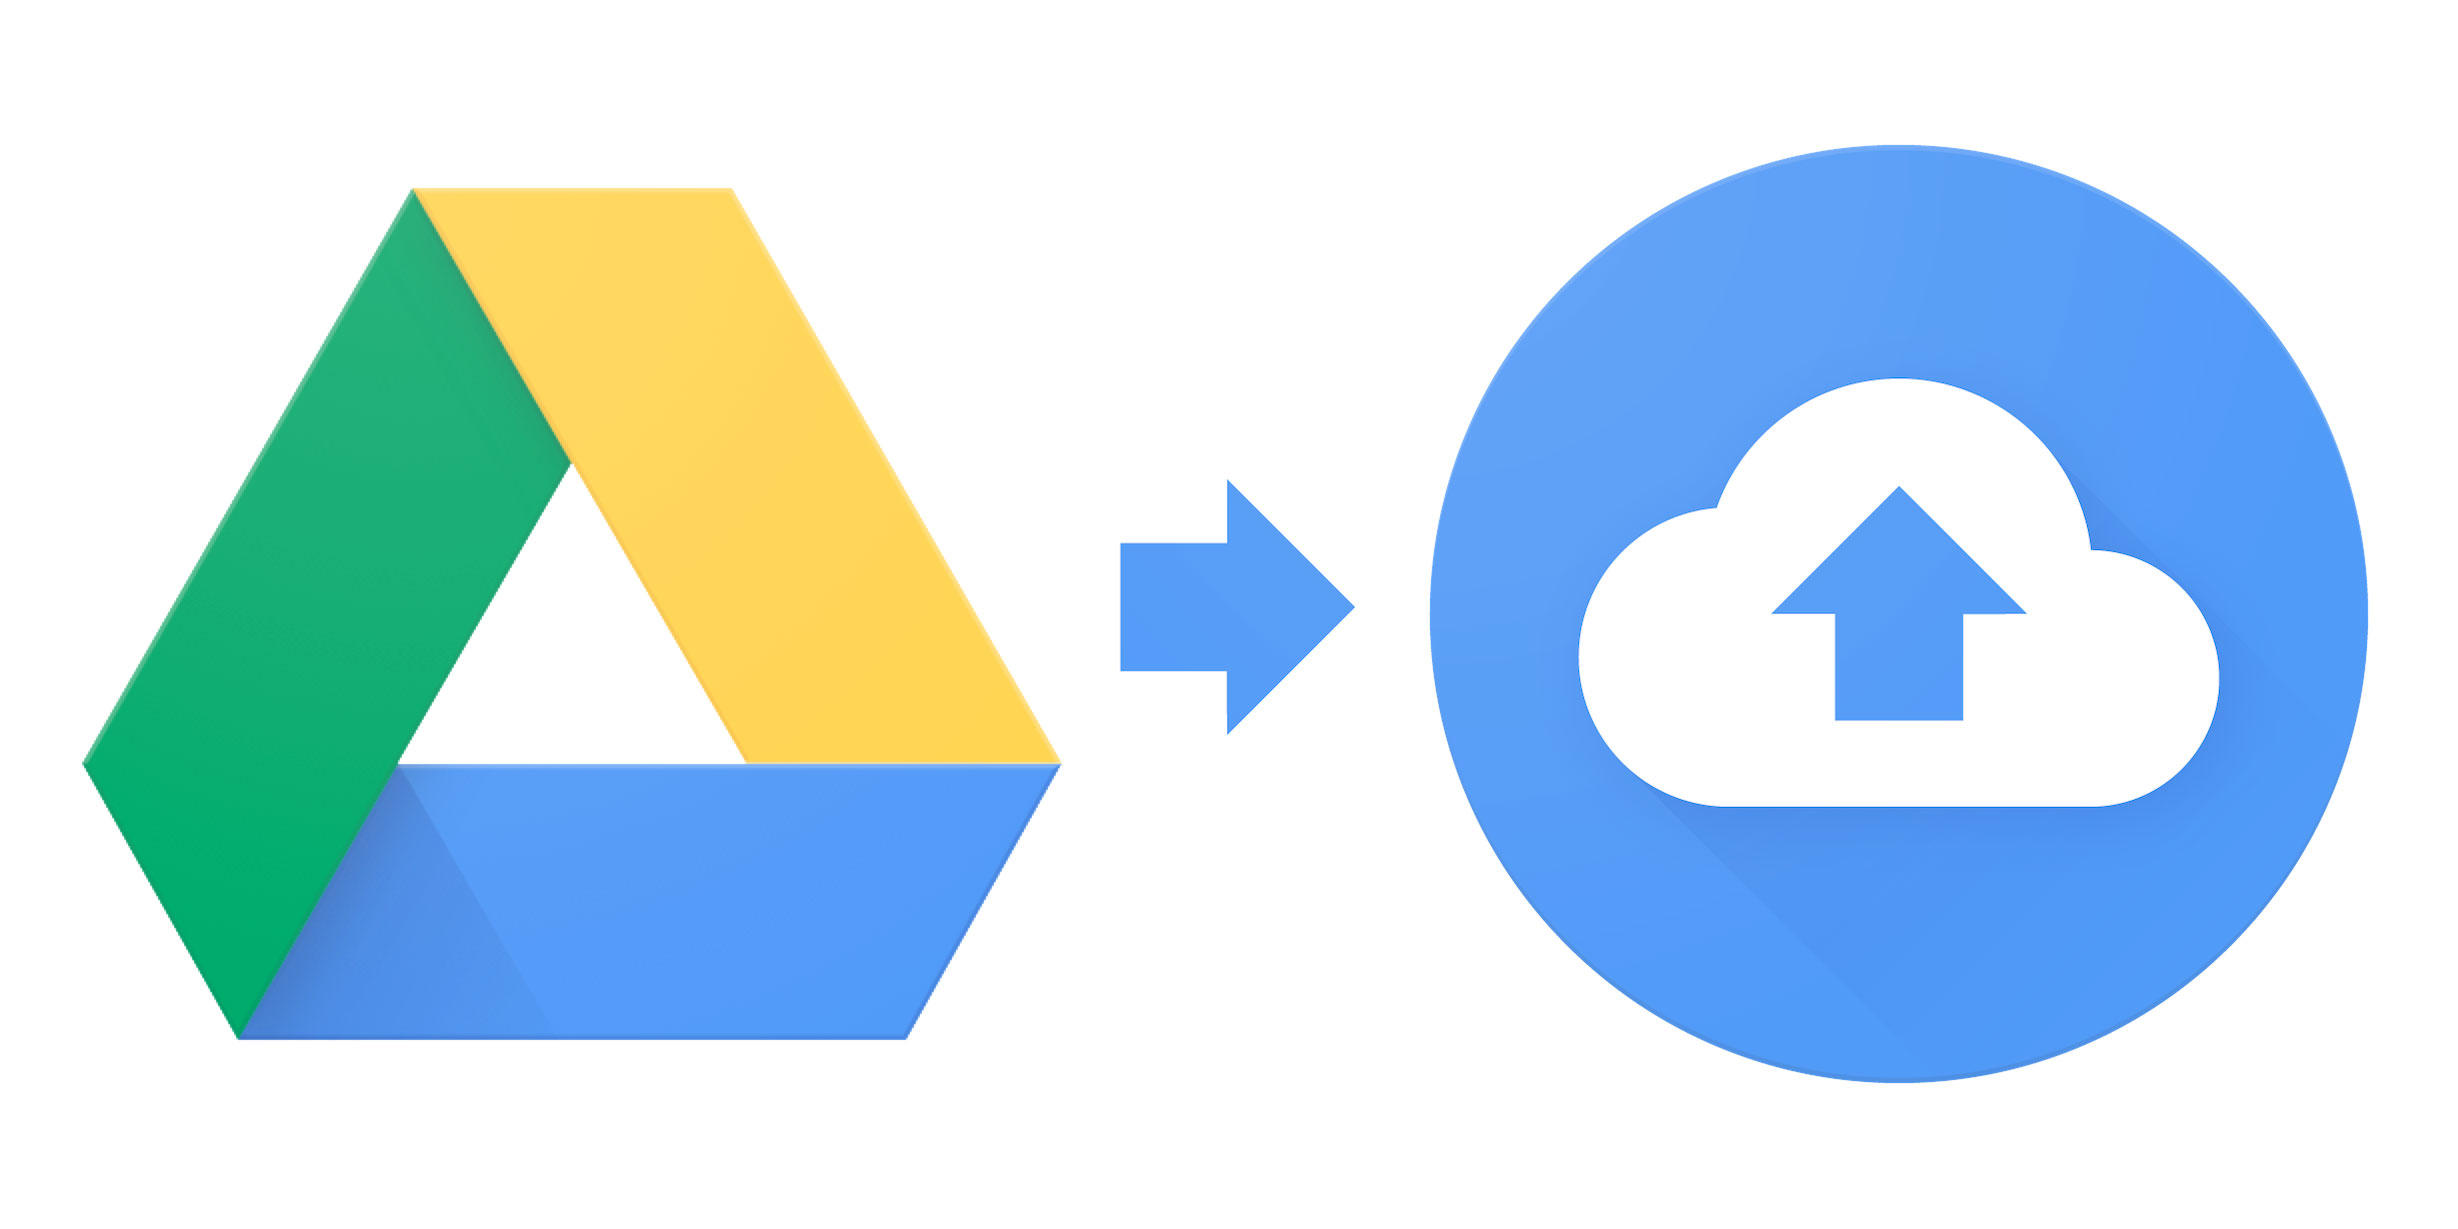 The Google Drive app for personal computers will stop working March 12, 2018. Its replacement, Backup and Sync, is available now.